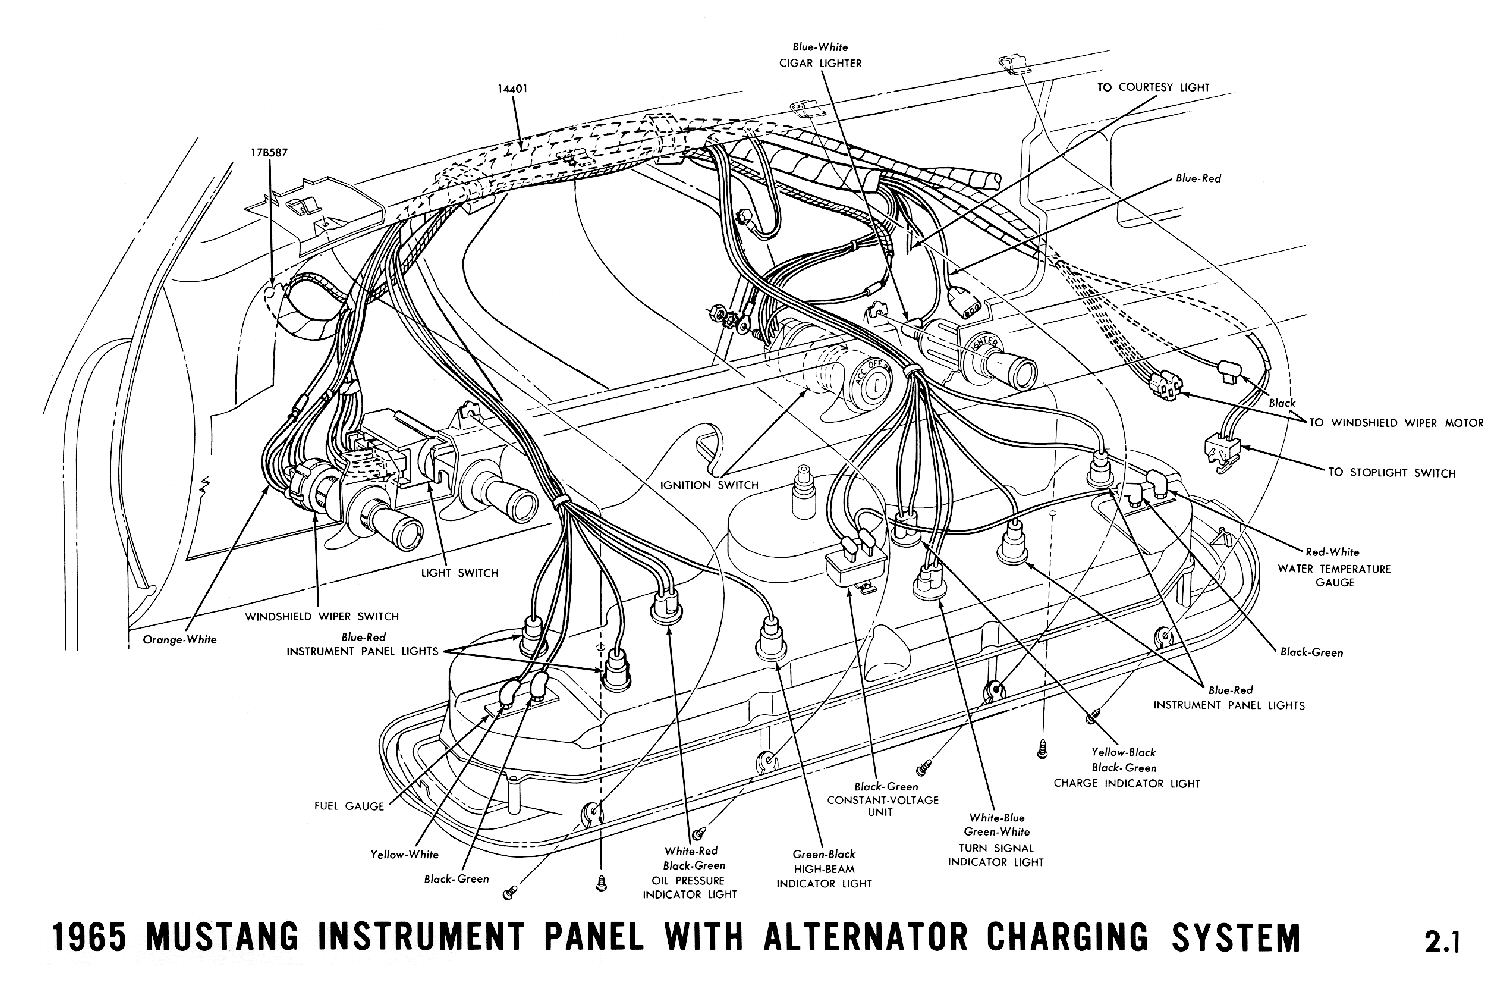 1965a 1965 mustang wiring diagrams average joe restoration 1965 ford mustang wiring diagram at crackthecode.co